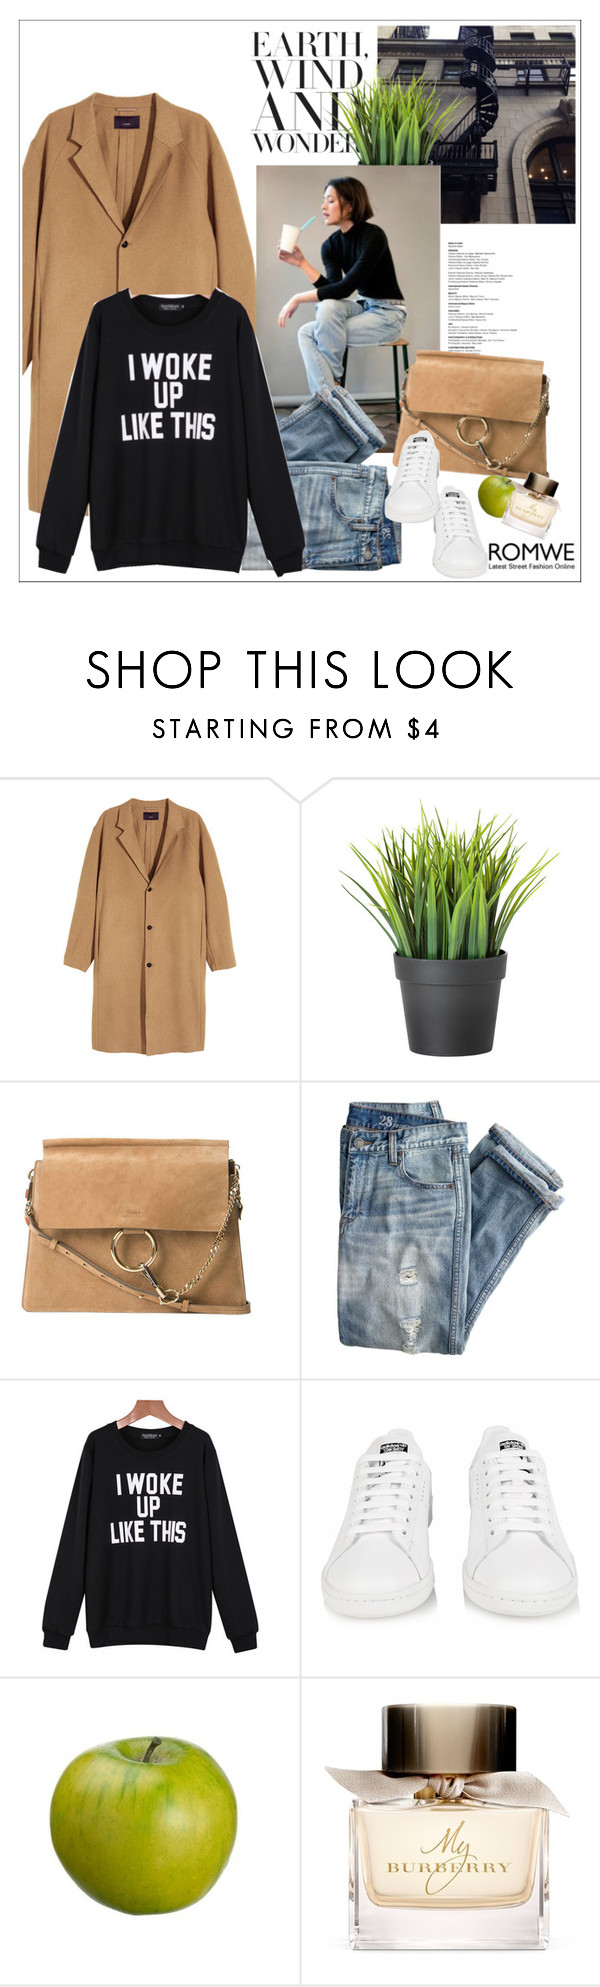 """""""i woke up like this"""" by little-curly-juli ❤ liked on Polyvore featuring Chloé, J.Crew, adidas and Burberry"""